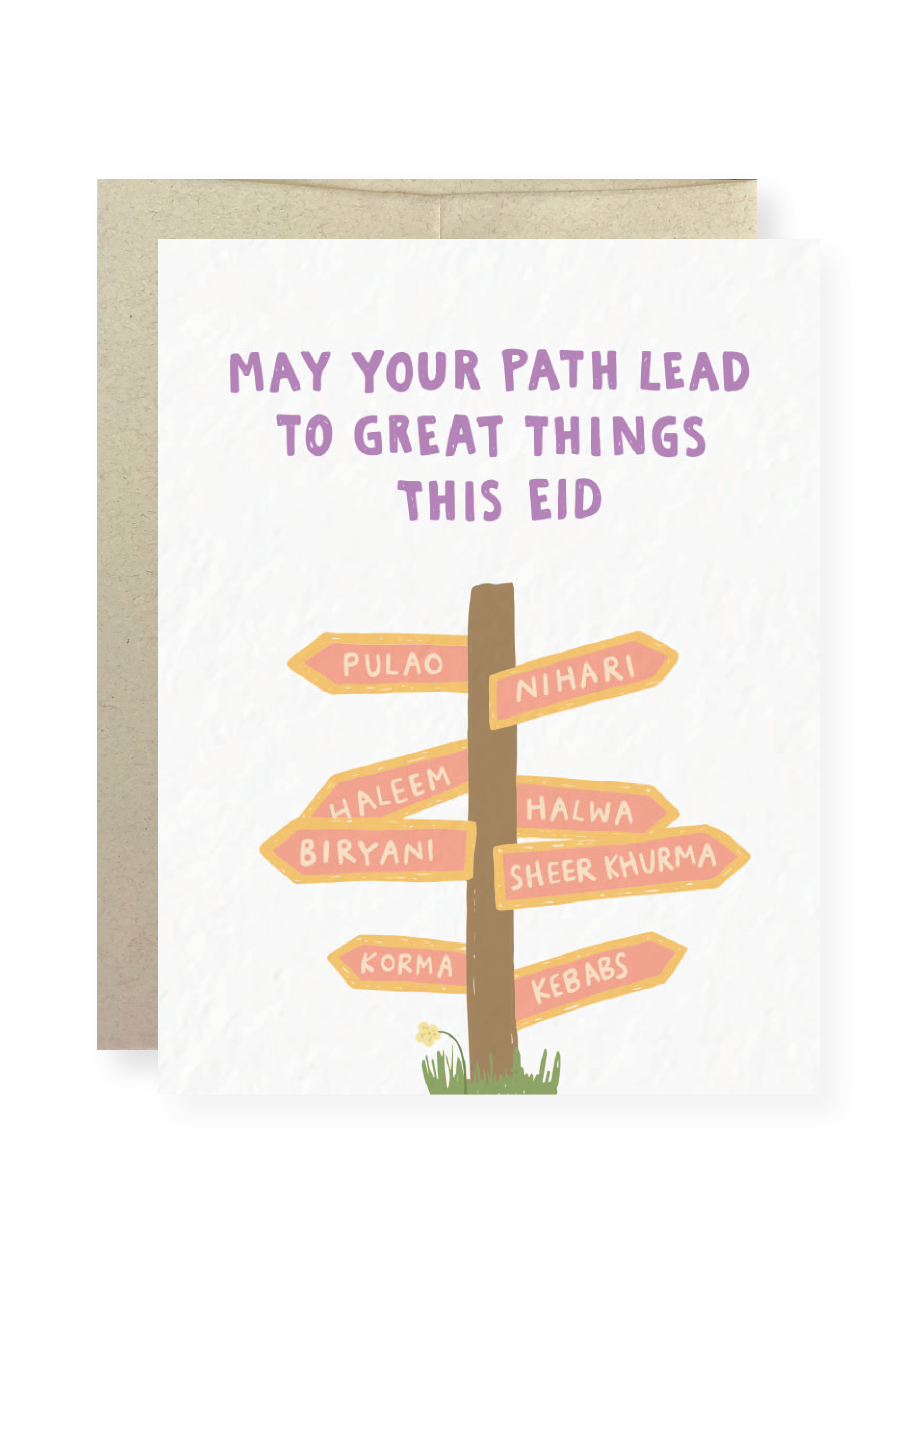 A Path filled with Great Things